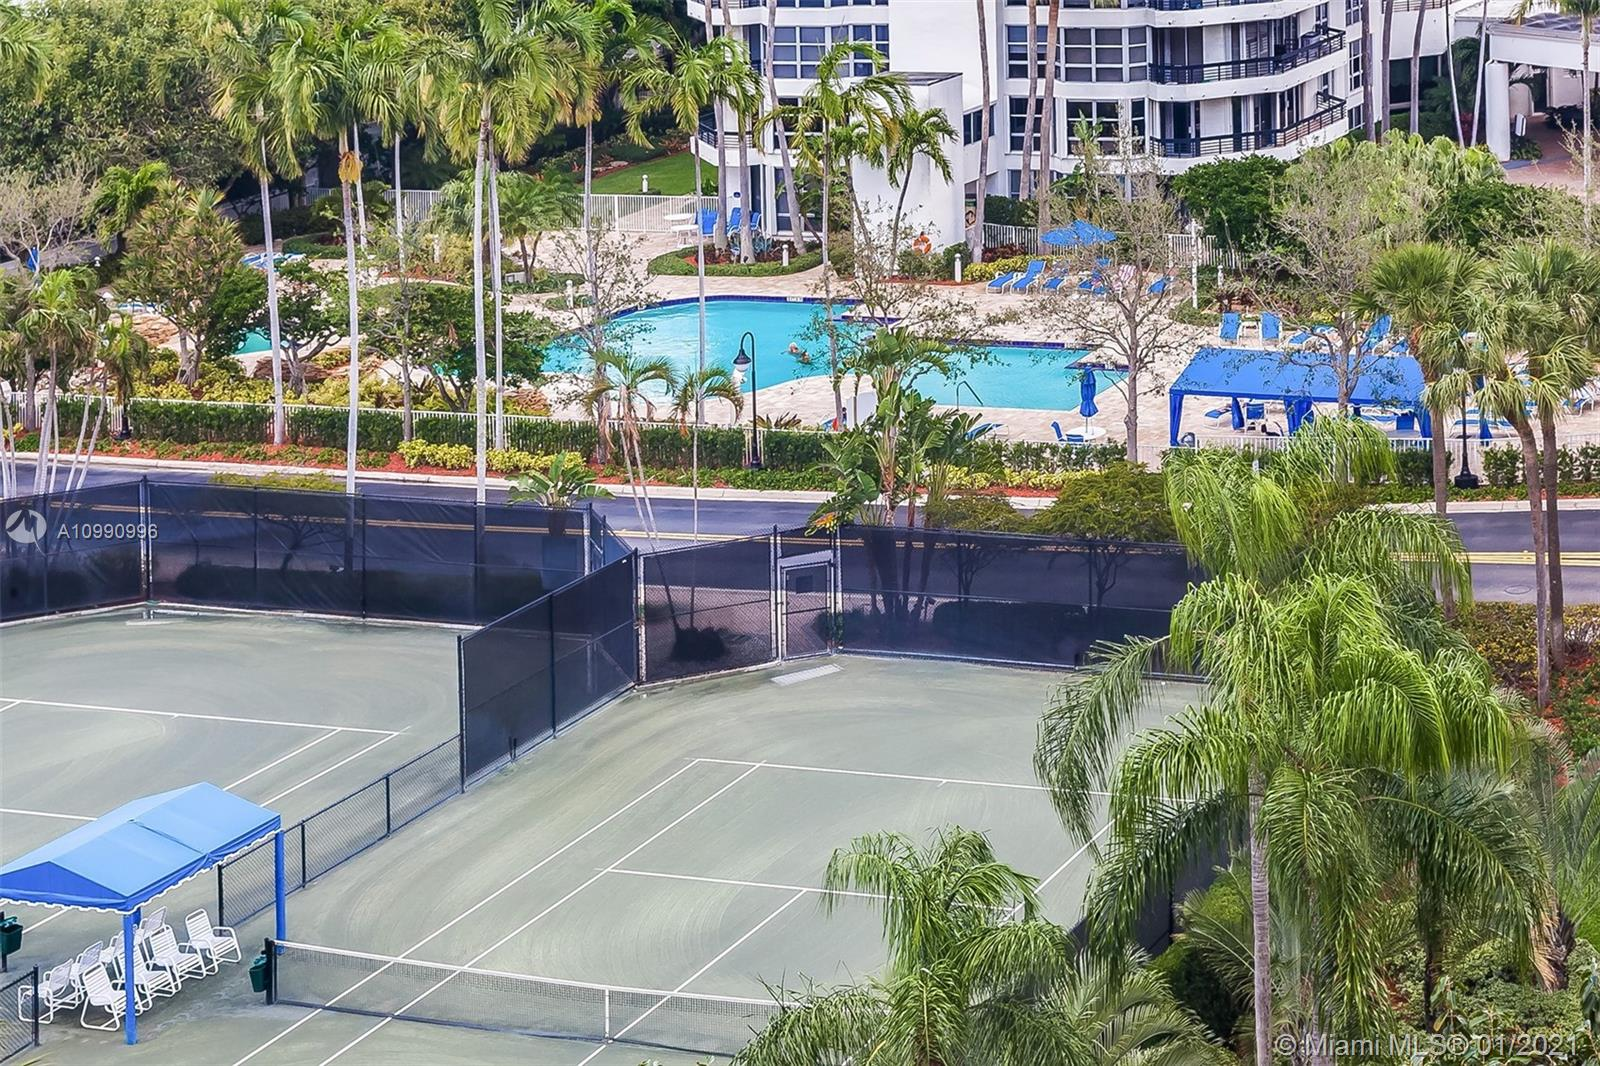 Photo of 3600 Mystic Pointe Dr #117, Aventura, Florida, 33180 - Mystic Pointe has eight tennis clay tennis courts and a tennis pro.